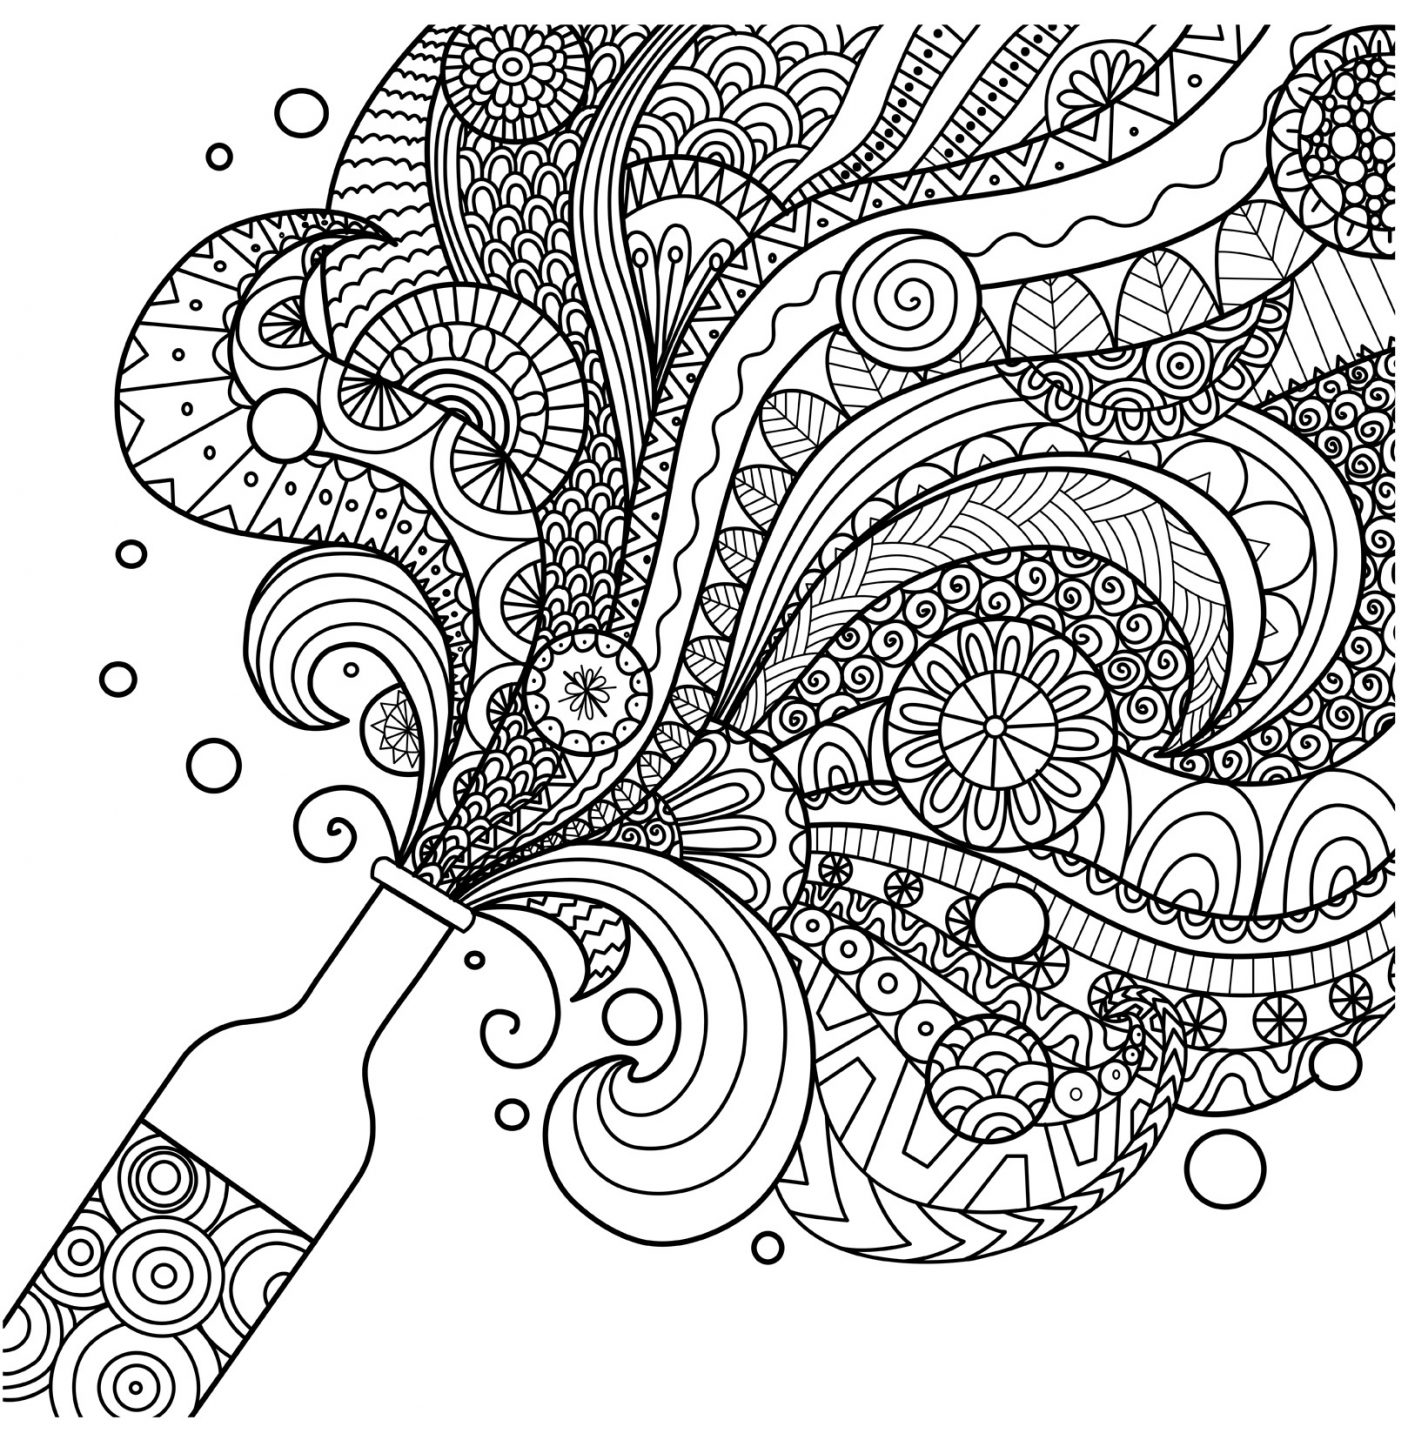 Line In Art And Design : Coloriage pour adulte yvecourt vins de bordeaux